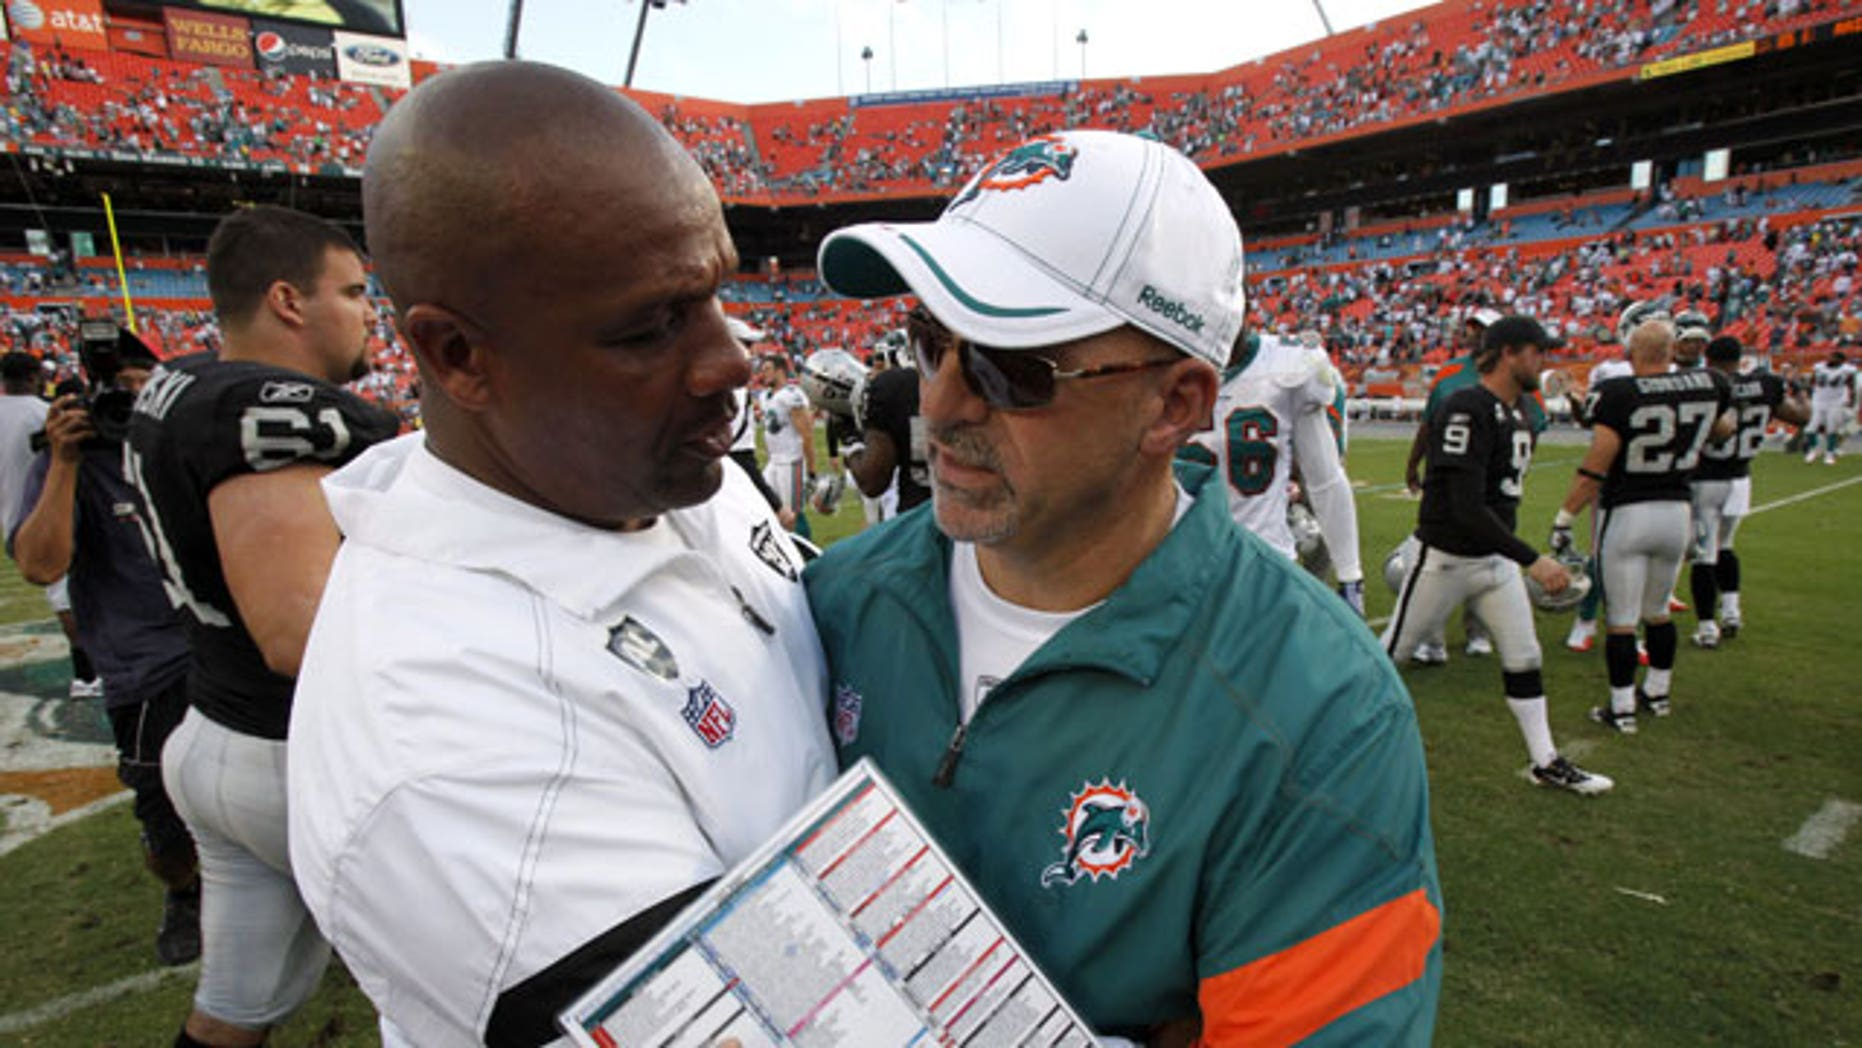 December 4, 2011: Oakland Raiders head coach Hue Jackson, left, and Miami Dolphins head coach Tony Sparano congratulate each other after the Dolphins defeated the Raiders 34-14 in an NFL football in Miami.